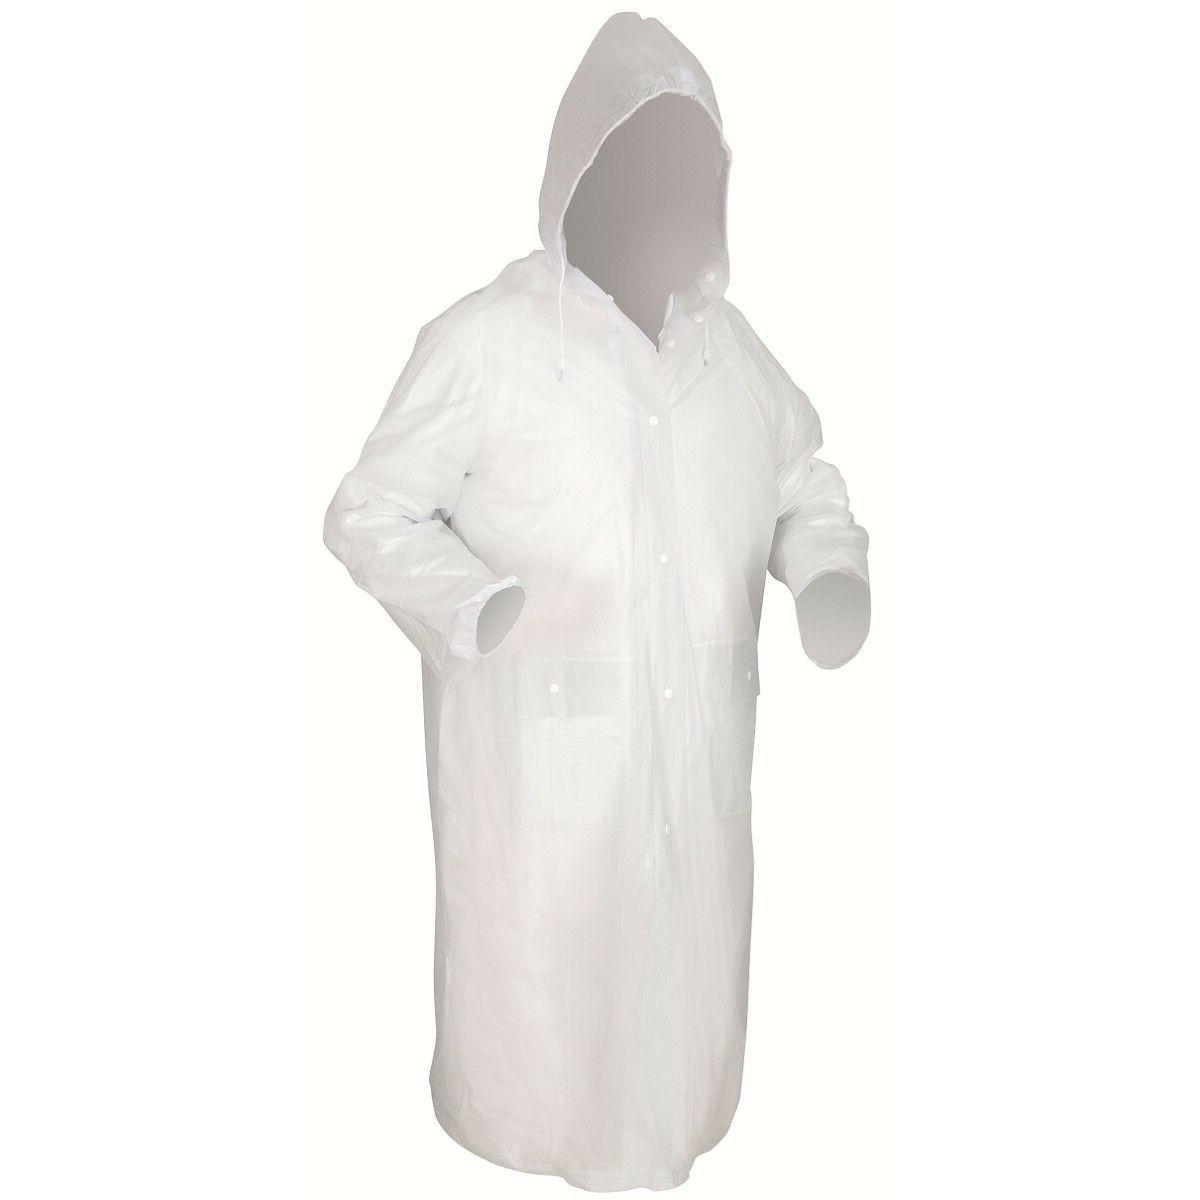 49 inch clear rain coat with detachable